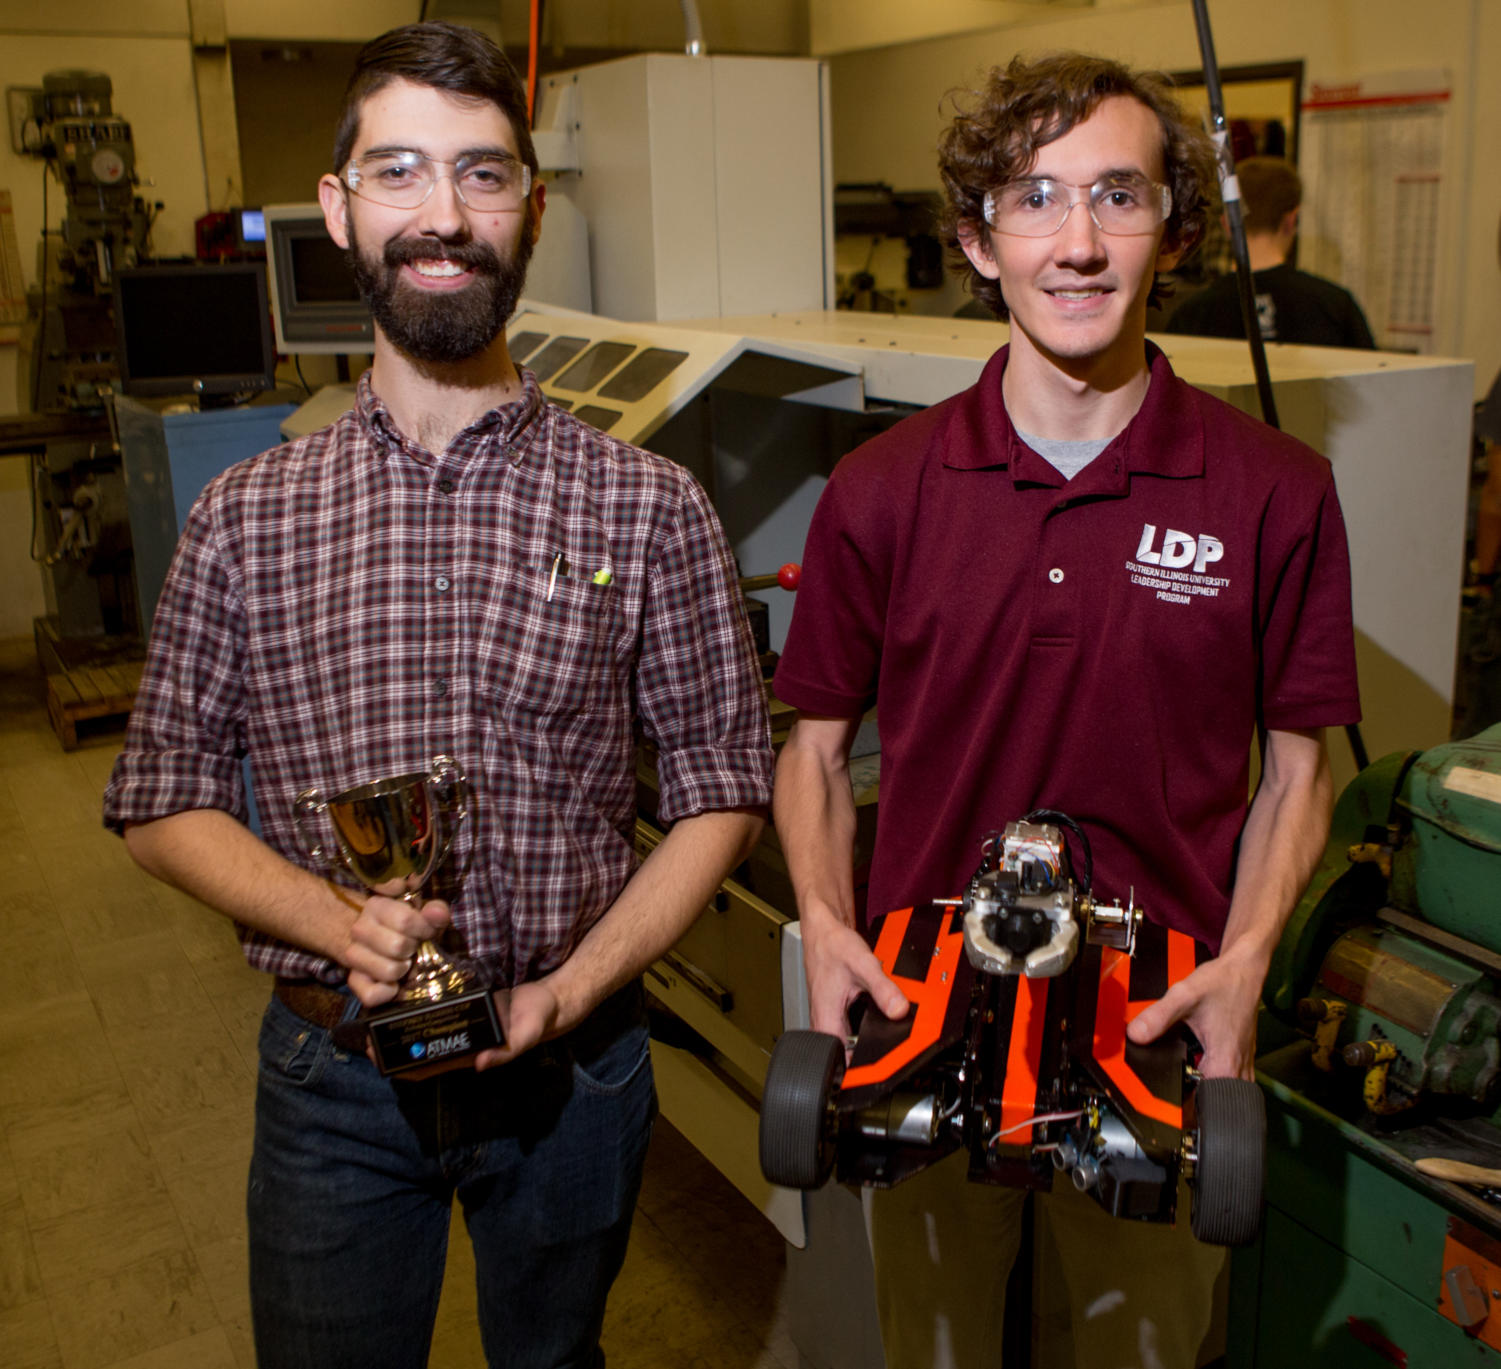 Nate Johnson, a junior studying electrical engineering from Abingdon, poses for a portrait alongside Lincoln Kinley, a junior studying electrical and computer engineering from Springfield, Wednesday, Nov. 16, 2017, in the industrial processes lab in the Engineering Building. The SIU Robotics team was the champion at the Association of Technology, Management, and Applied Engineering 2017 conference robotics competition with its robot,